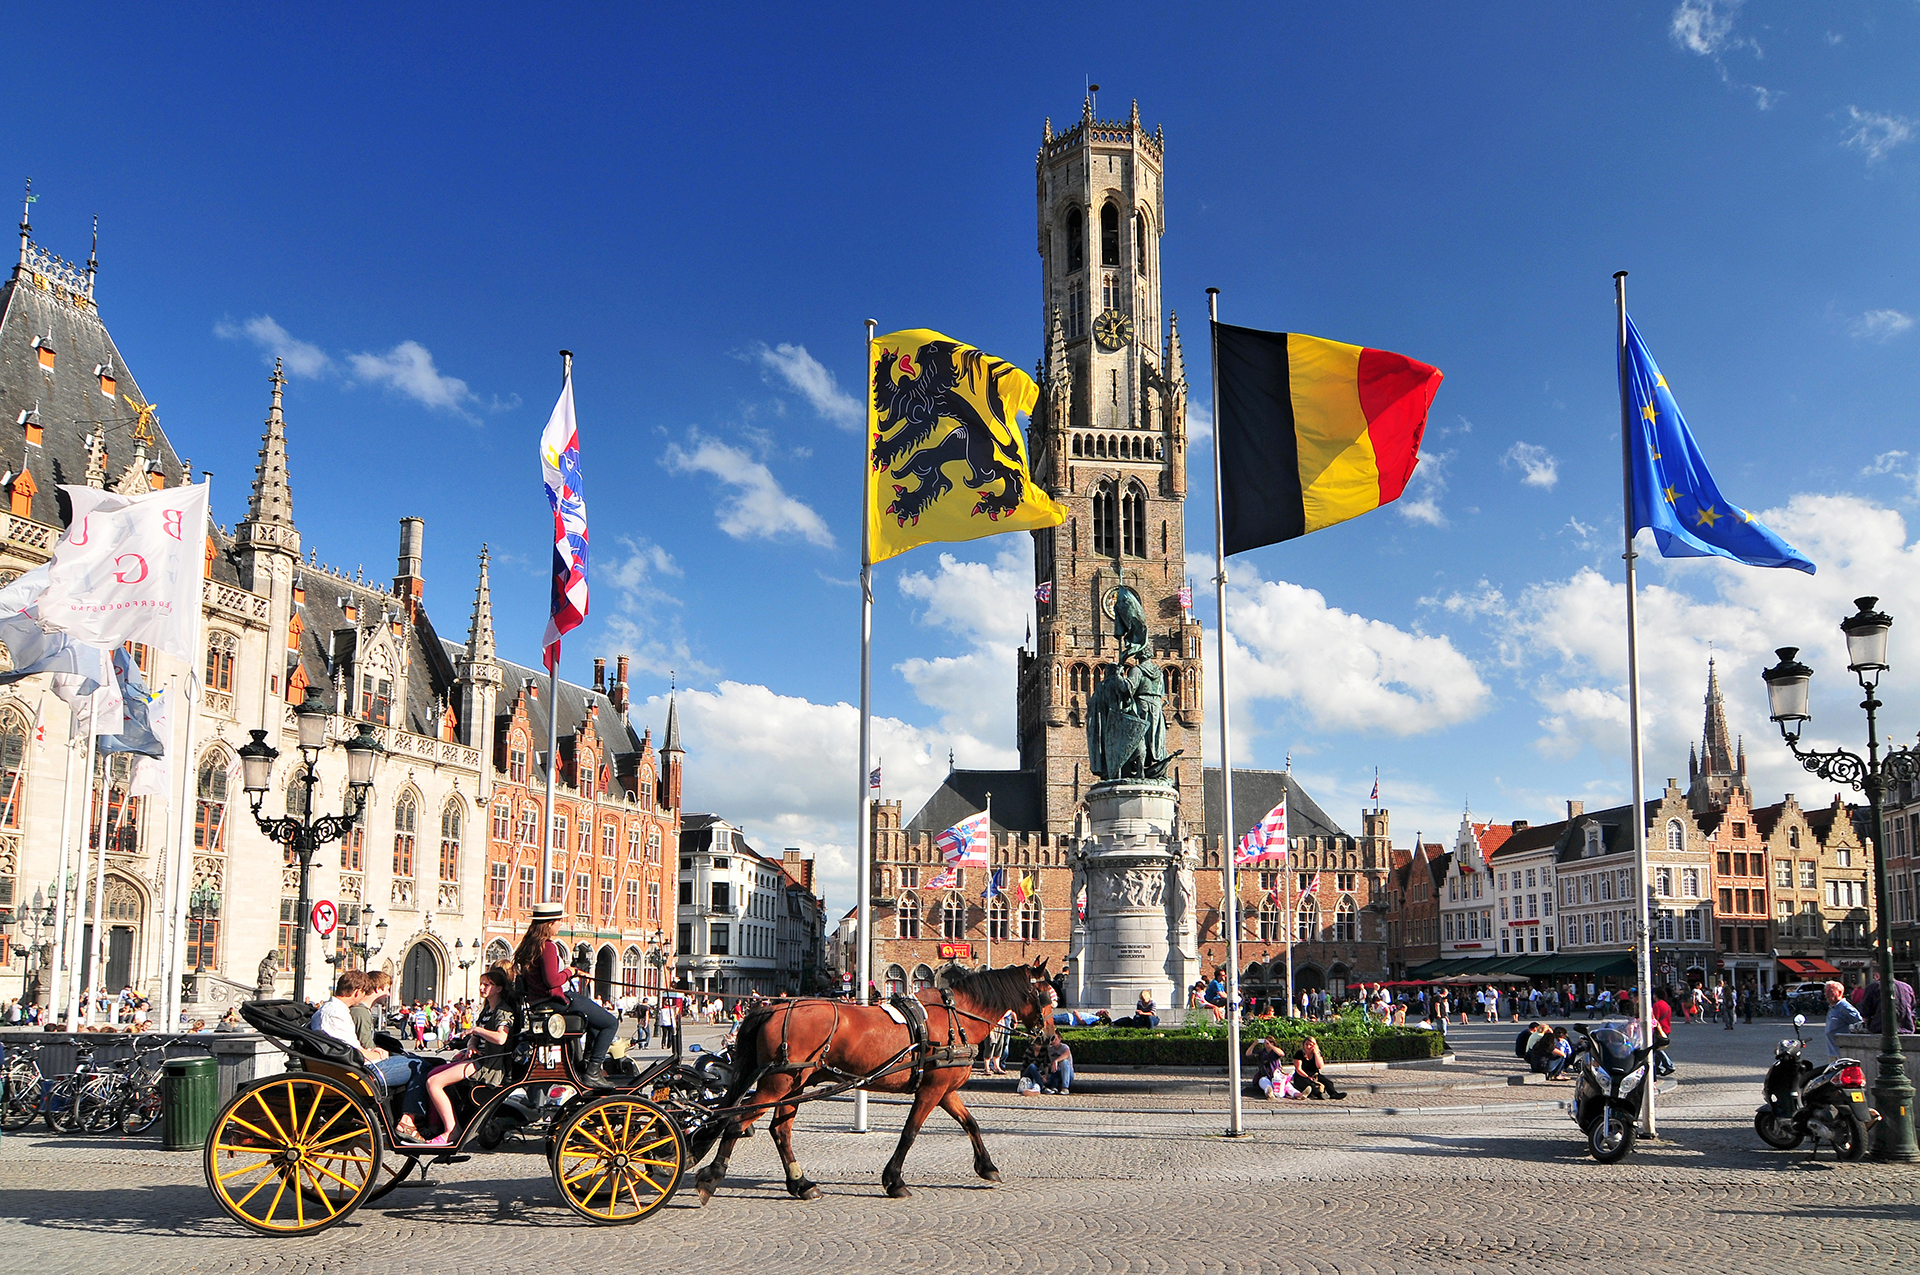 The historic belfry and city center square in the old medieval old town of Bruges (Brugge) Belgium.